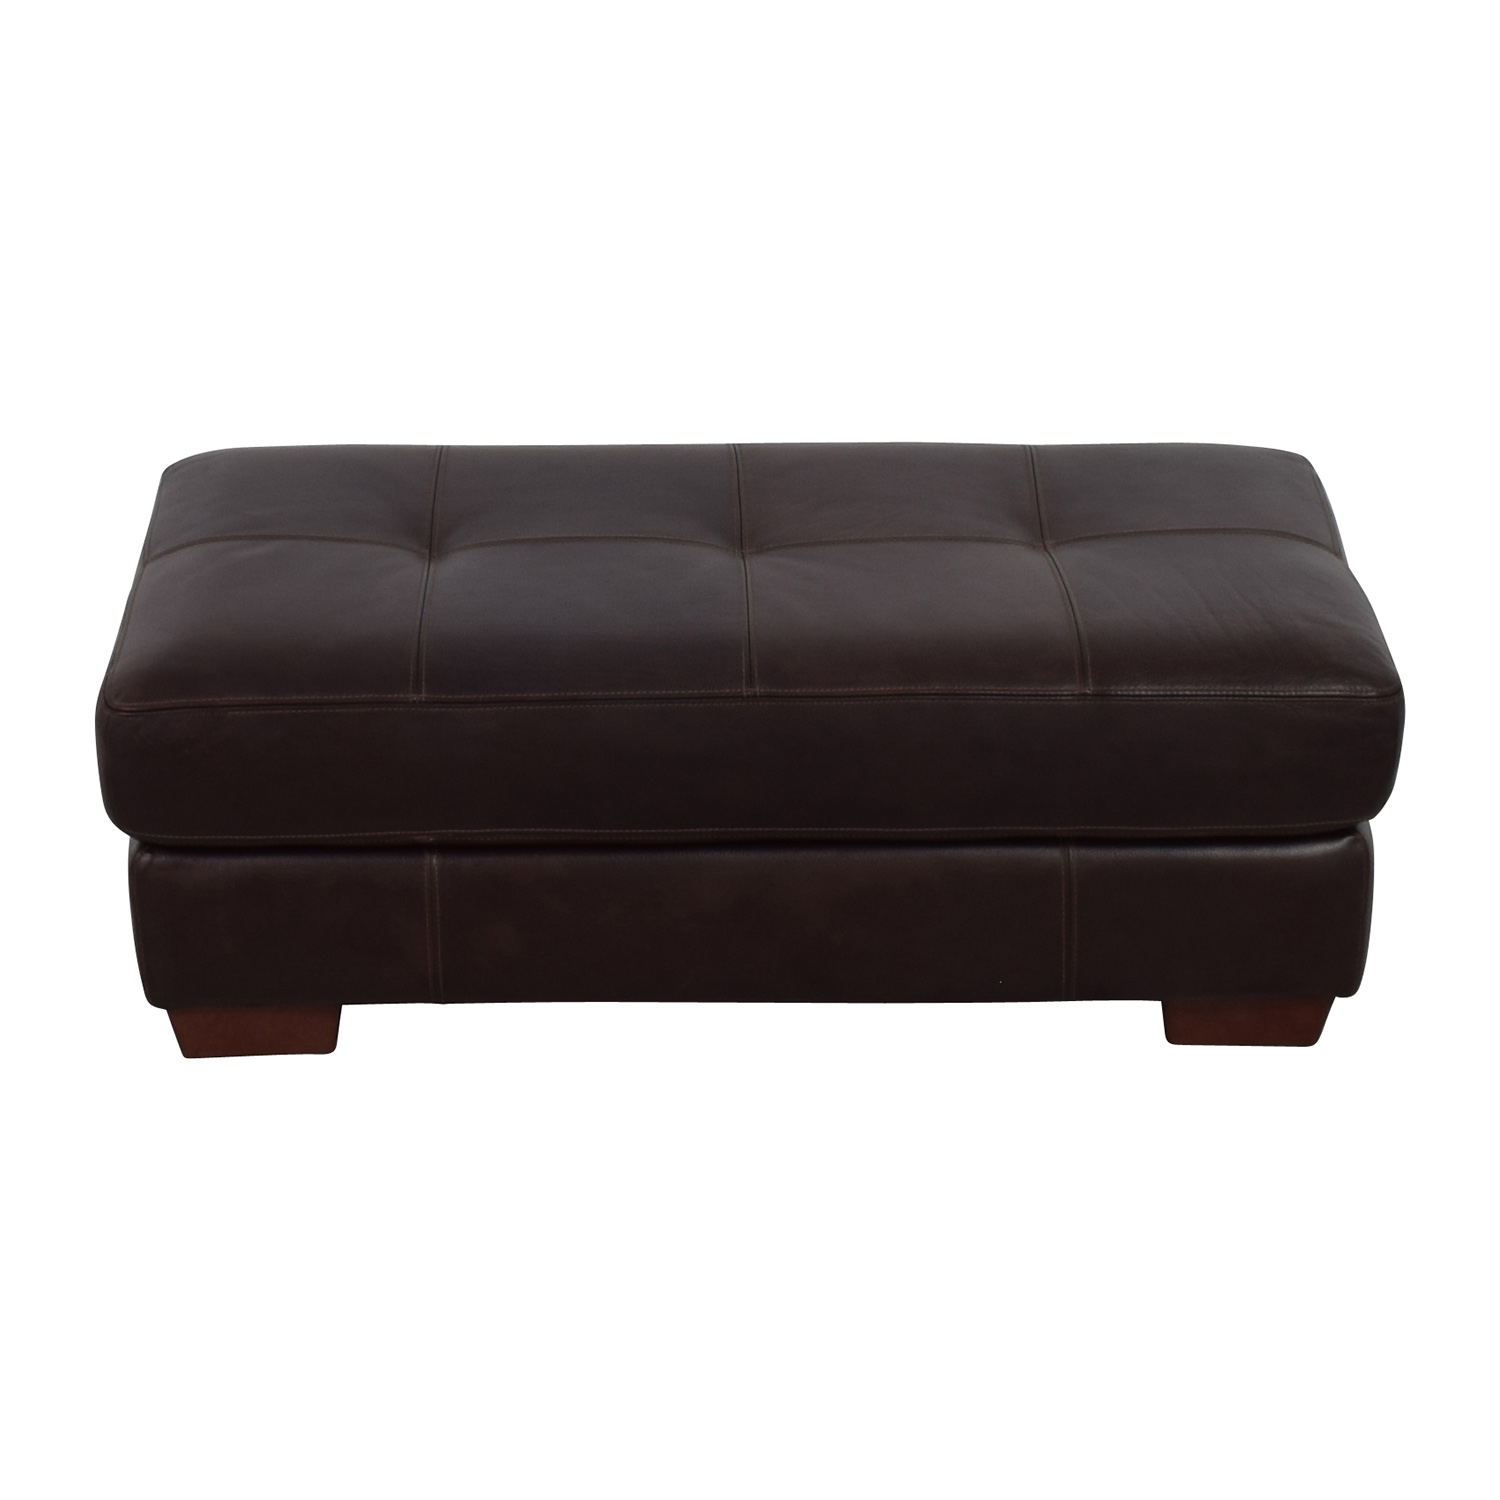 Chateau Dax Phoenix Cocktail Dark Brown Leather Ottoman Chateau Dax